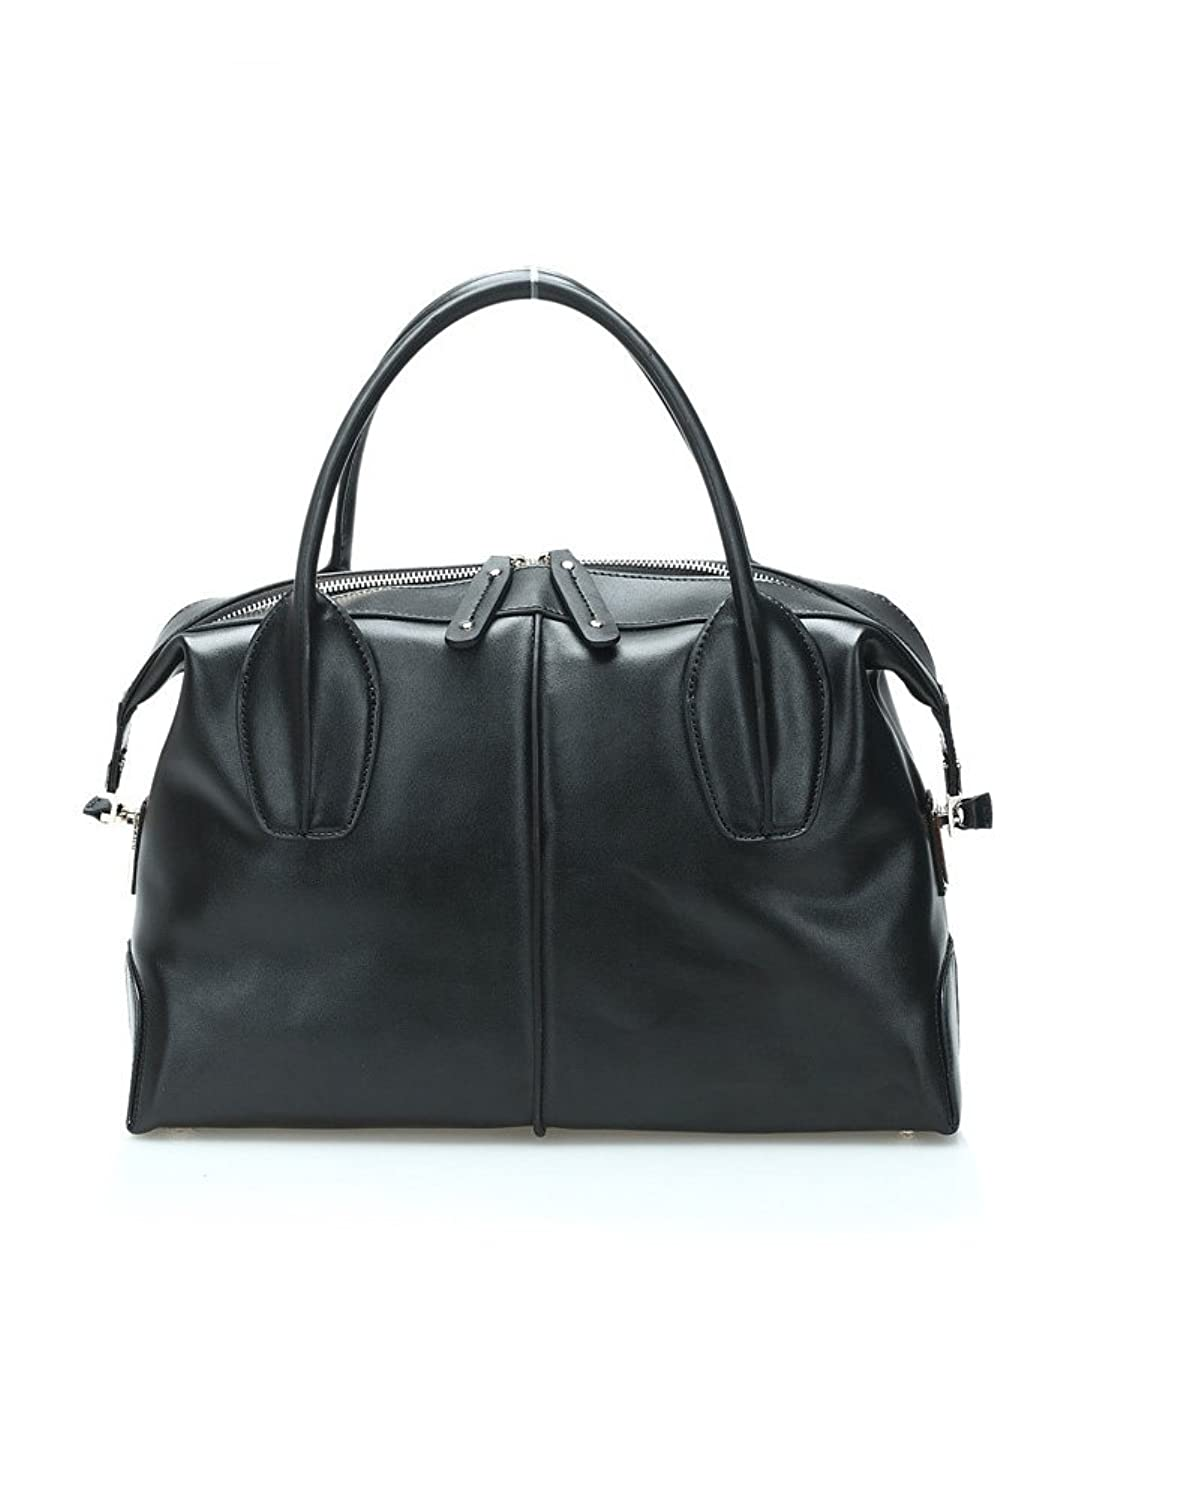 Fineplus Women'S Large Roomy Leather Multifunctional Shoulder Tote Bag 8